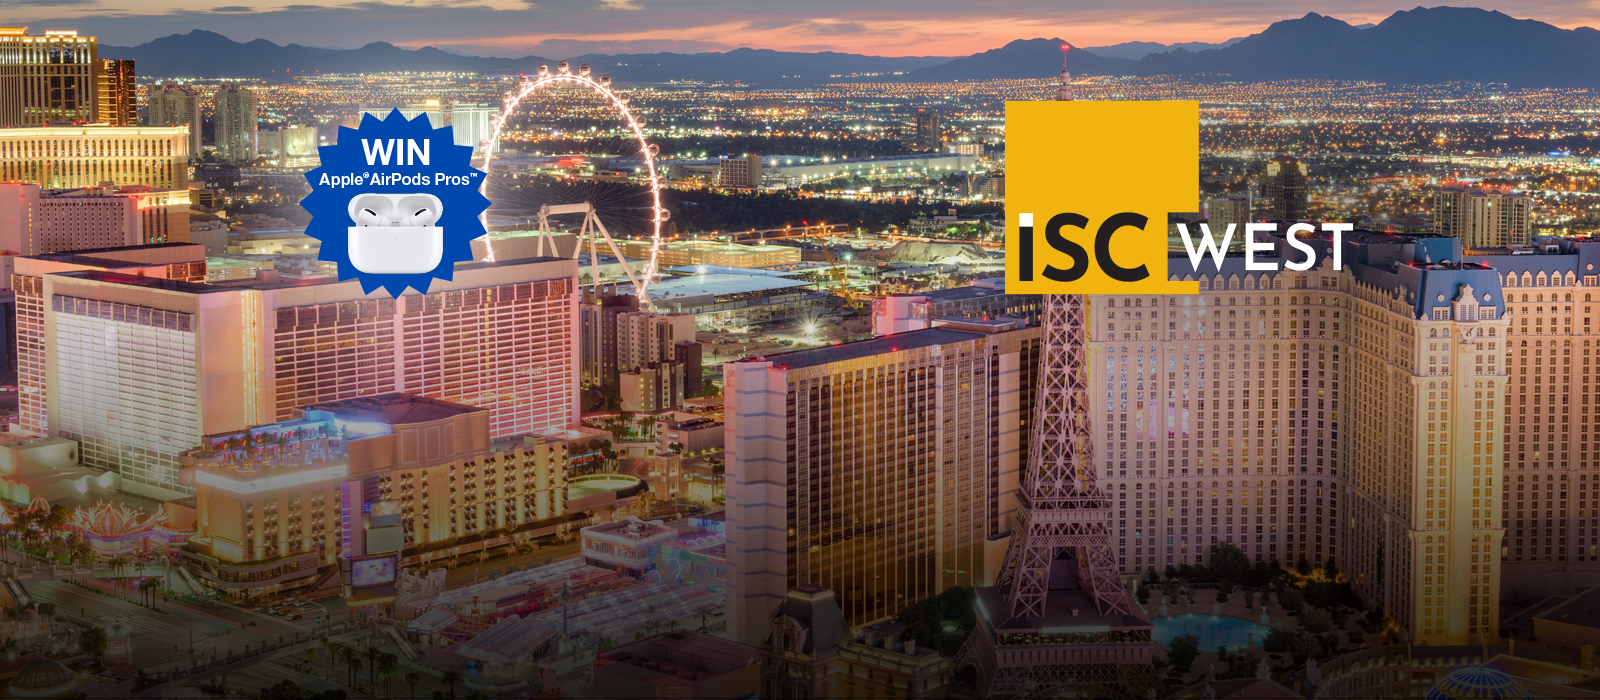 See Us at ISC WEST 2020 Booth #8045<br />March 18-20 Sands Expo, Las Vegas, NV<br />Visit Our Booth to Win Apple AirPods Pros